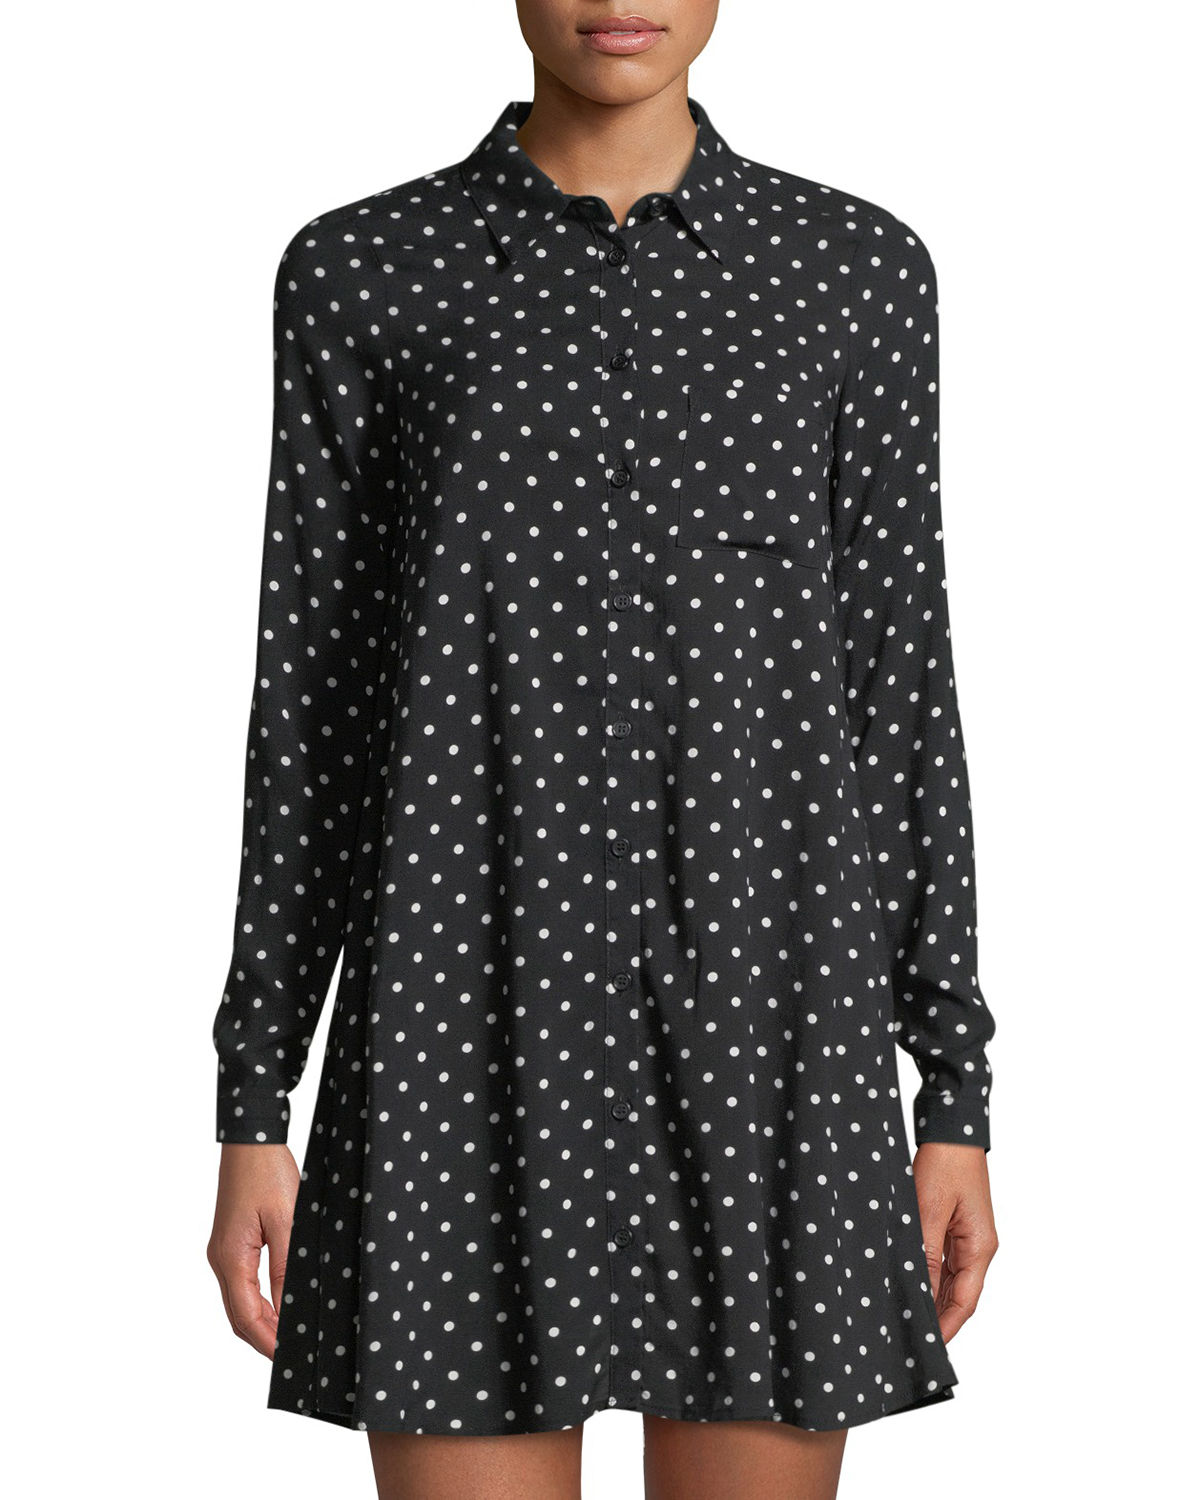 Camp Mini Dot-Print Shirtdress